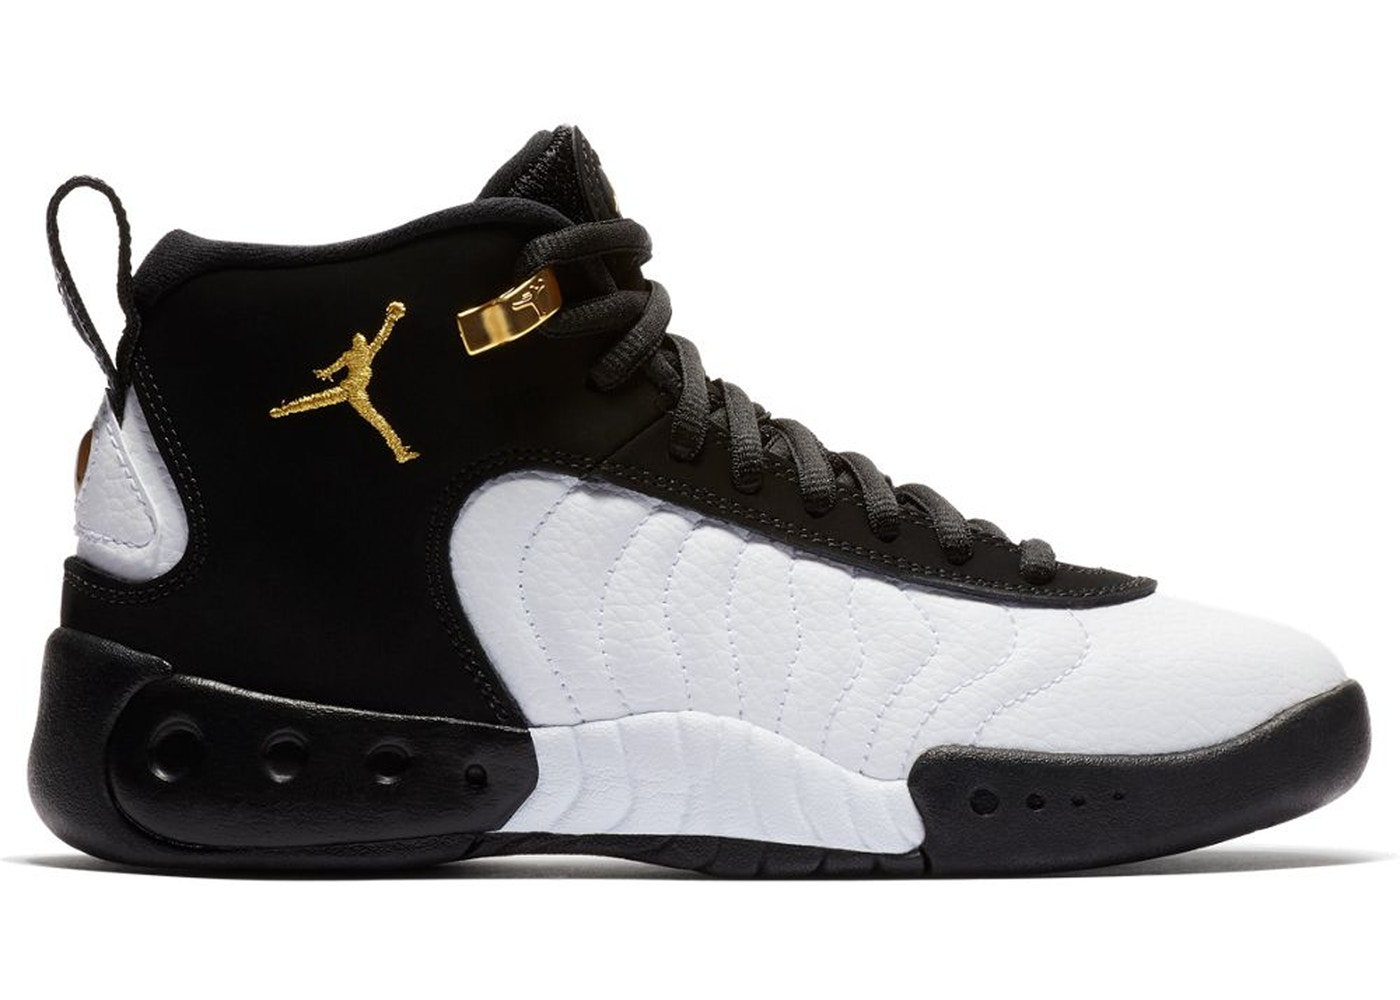 5f6fa51c317f2a Jordan Jumpman Pro Black Gold White (GS) - 907973-032